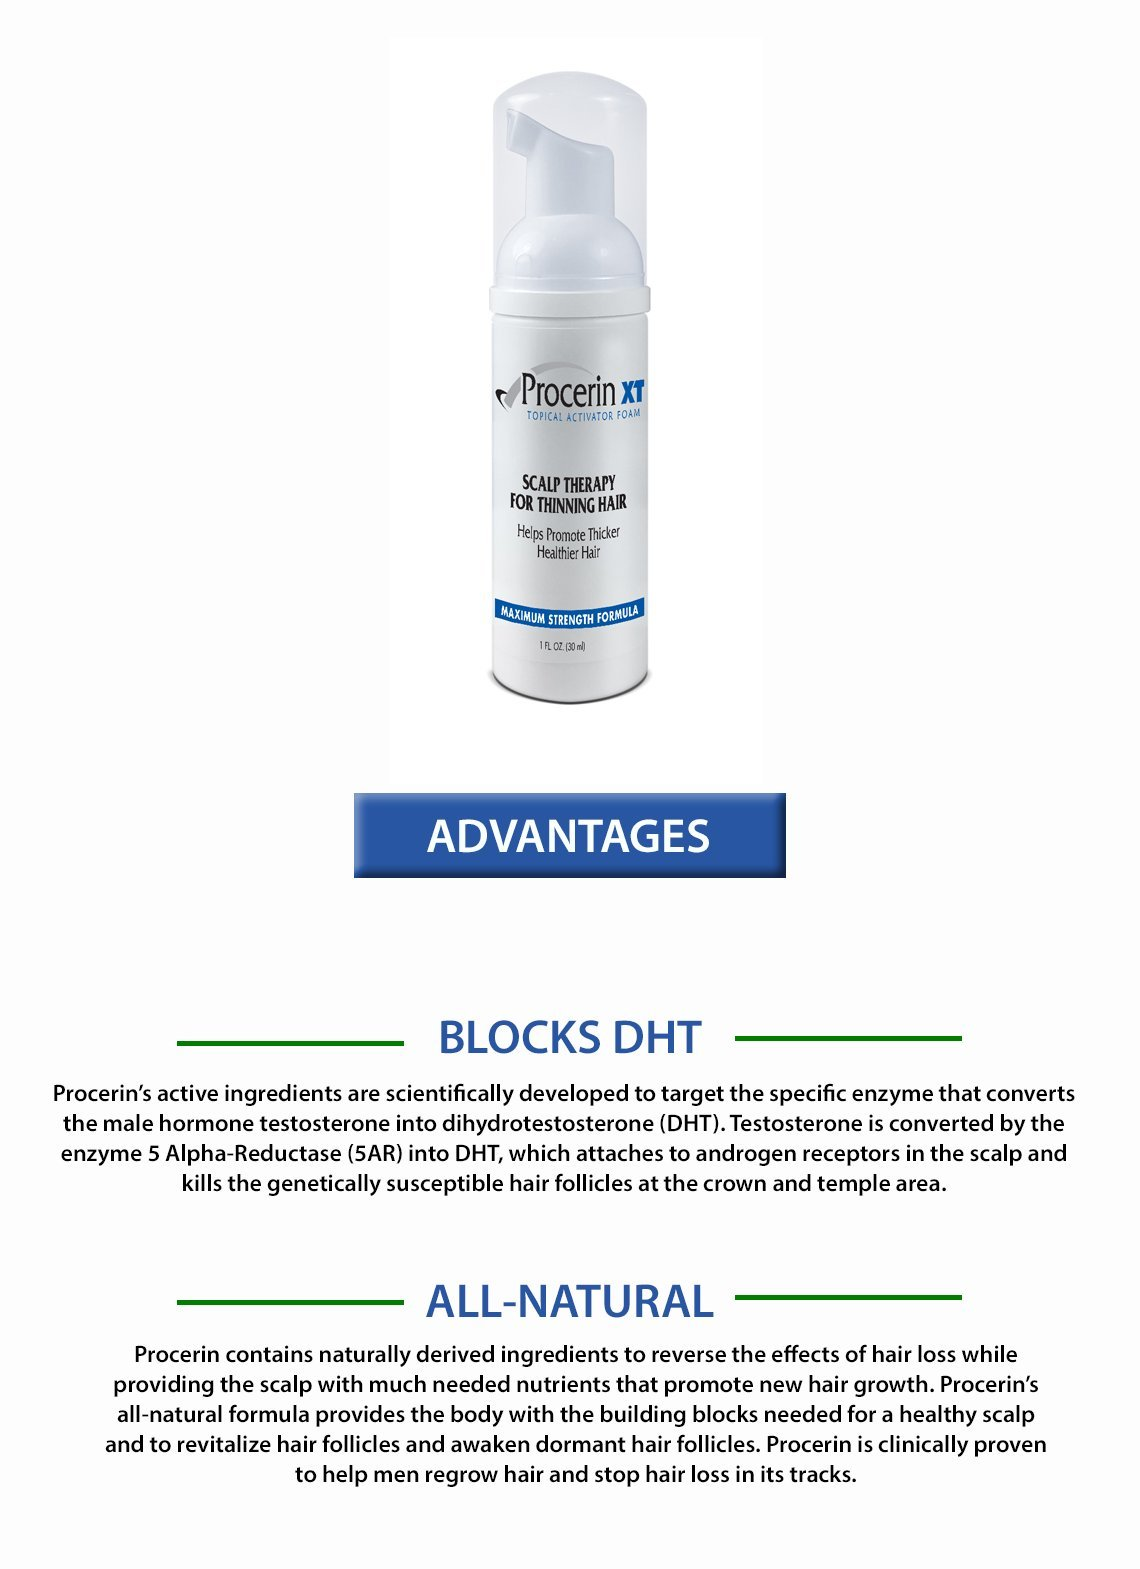 Procerin XT Foam Hair Loss Foam Product (No Minoxidil) - Clinically Proven to Combat Baldness & Thinning Hair by Procerin (Image #3)